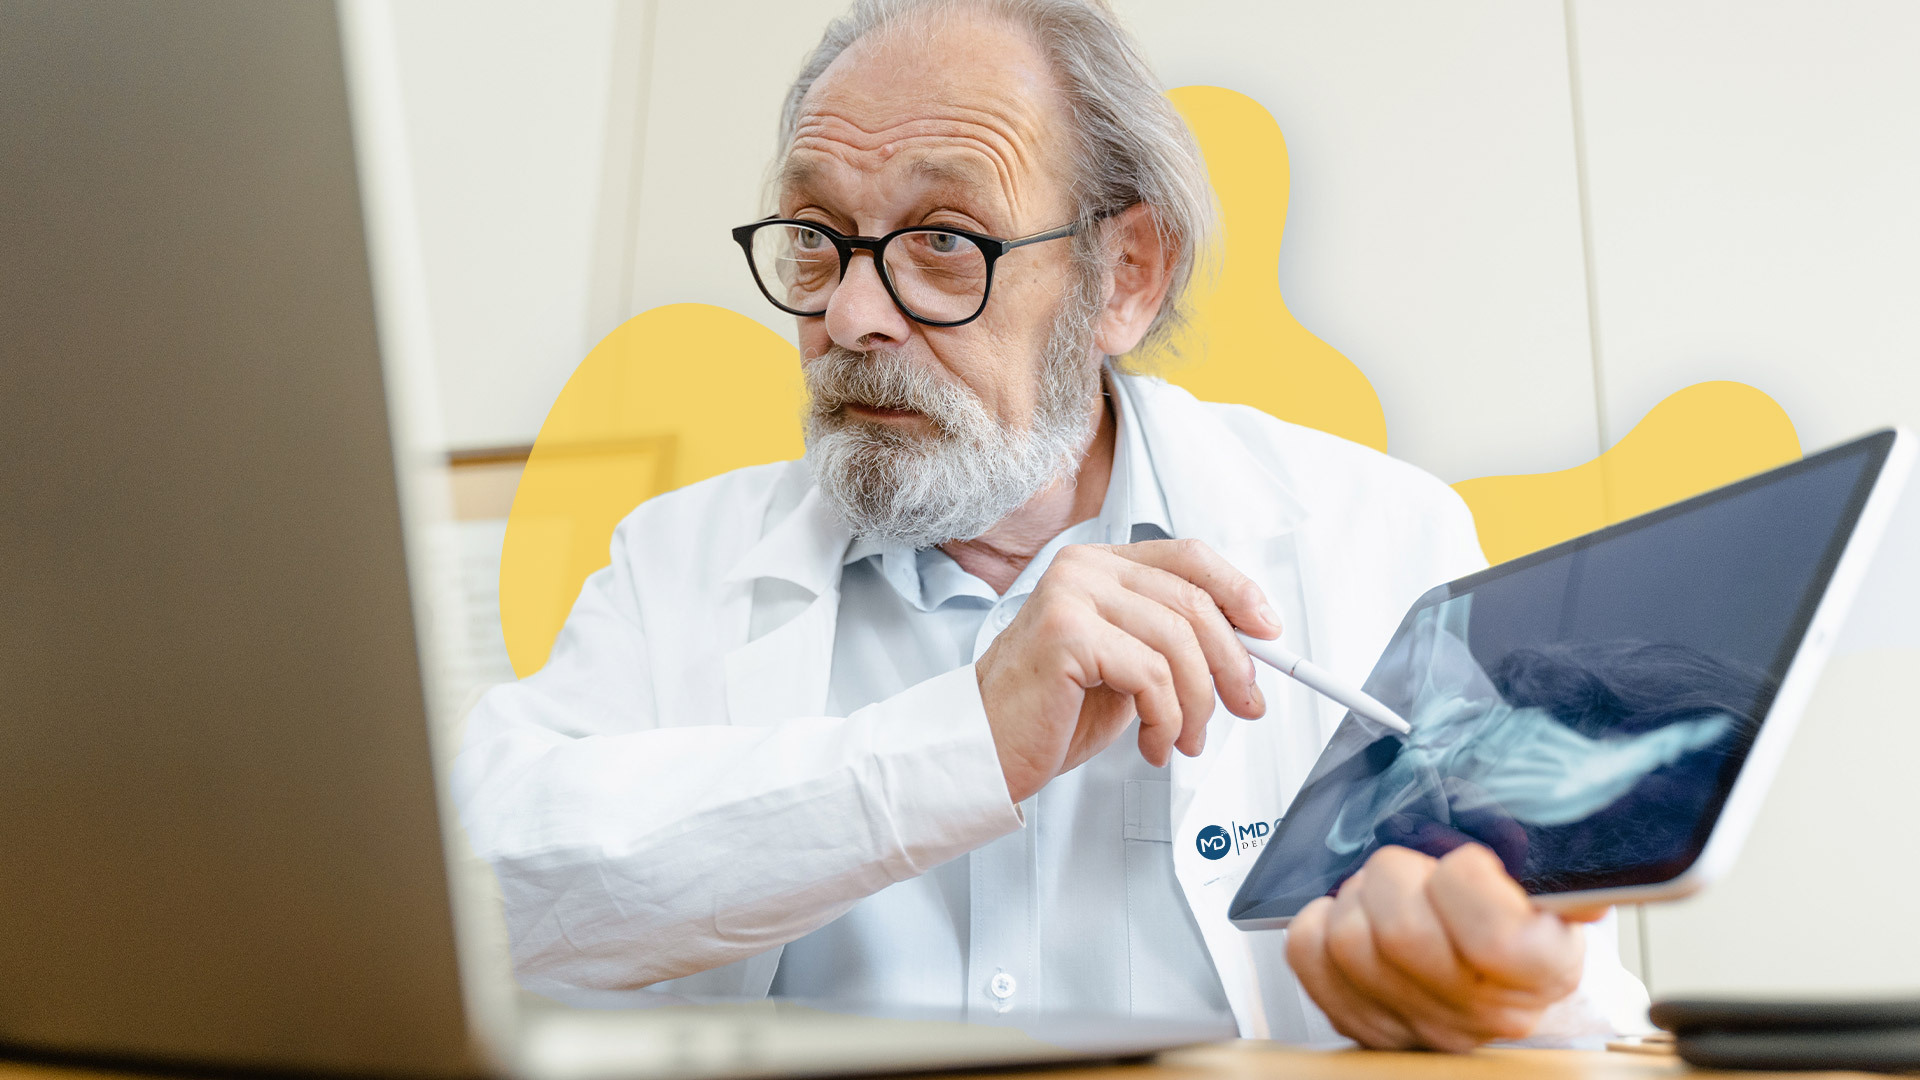 What Is the Purpose of a Telemedicine Walk-In Clinic?